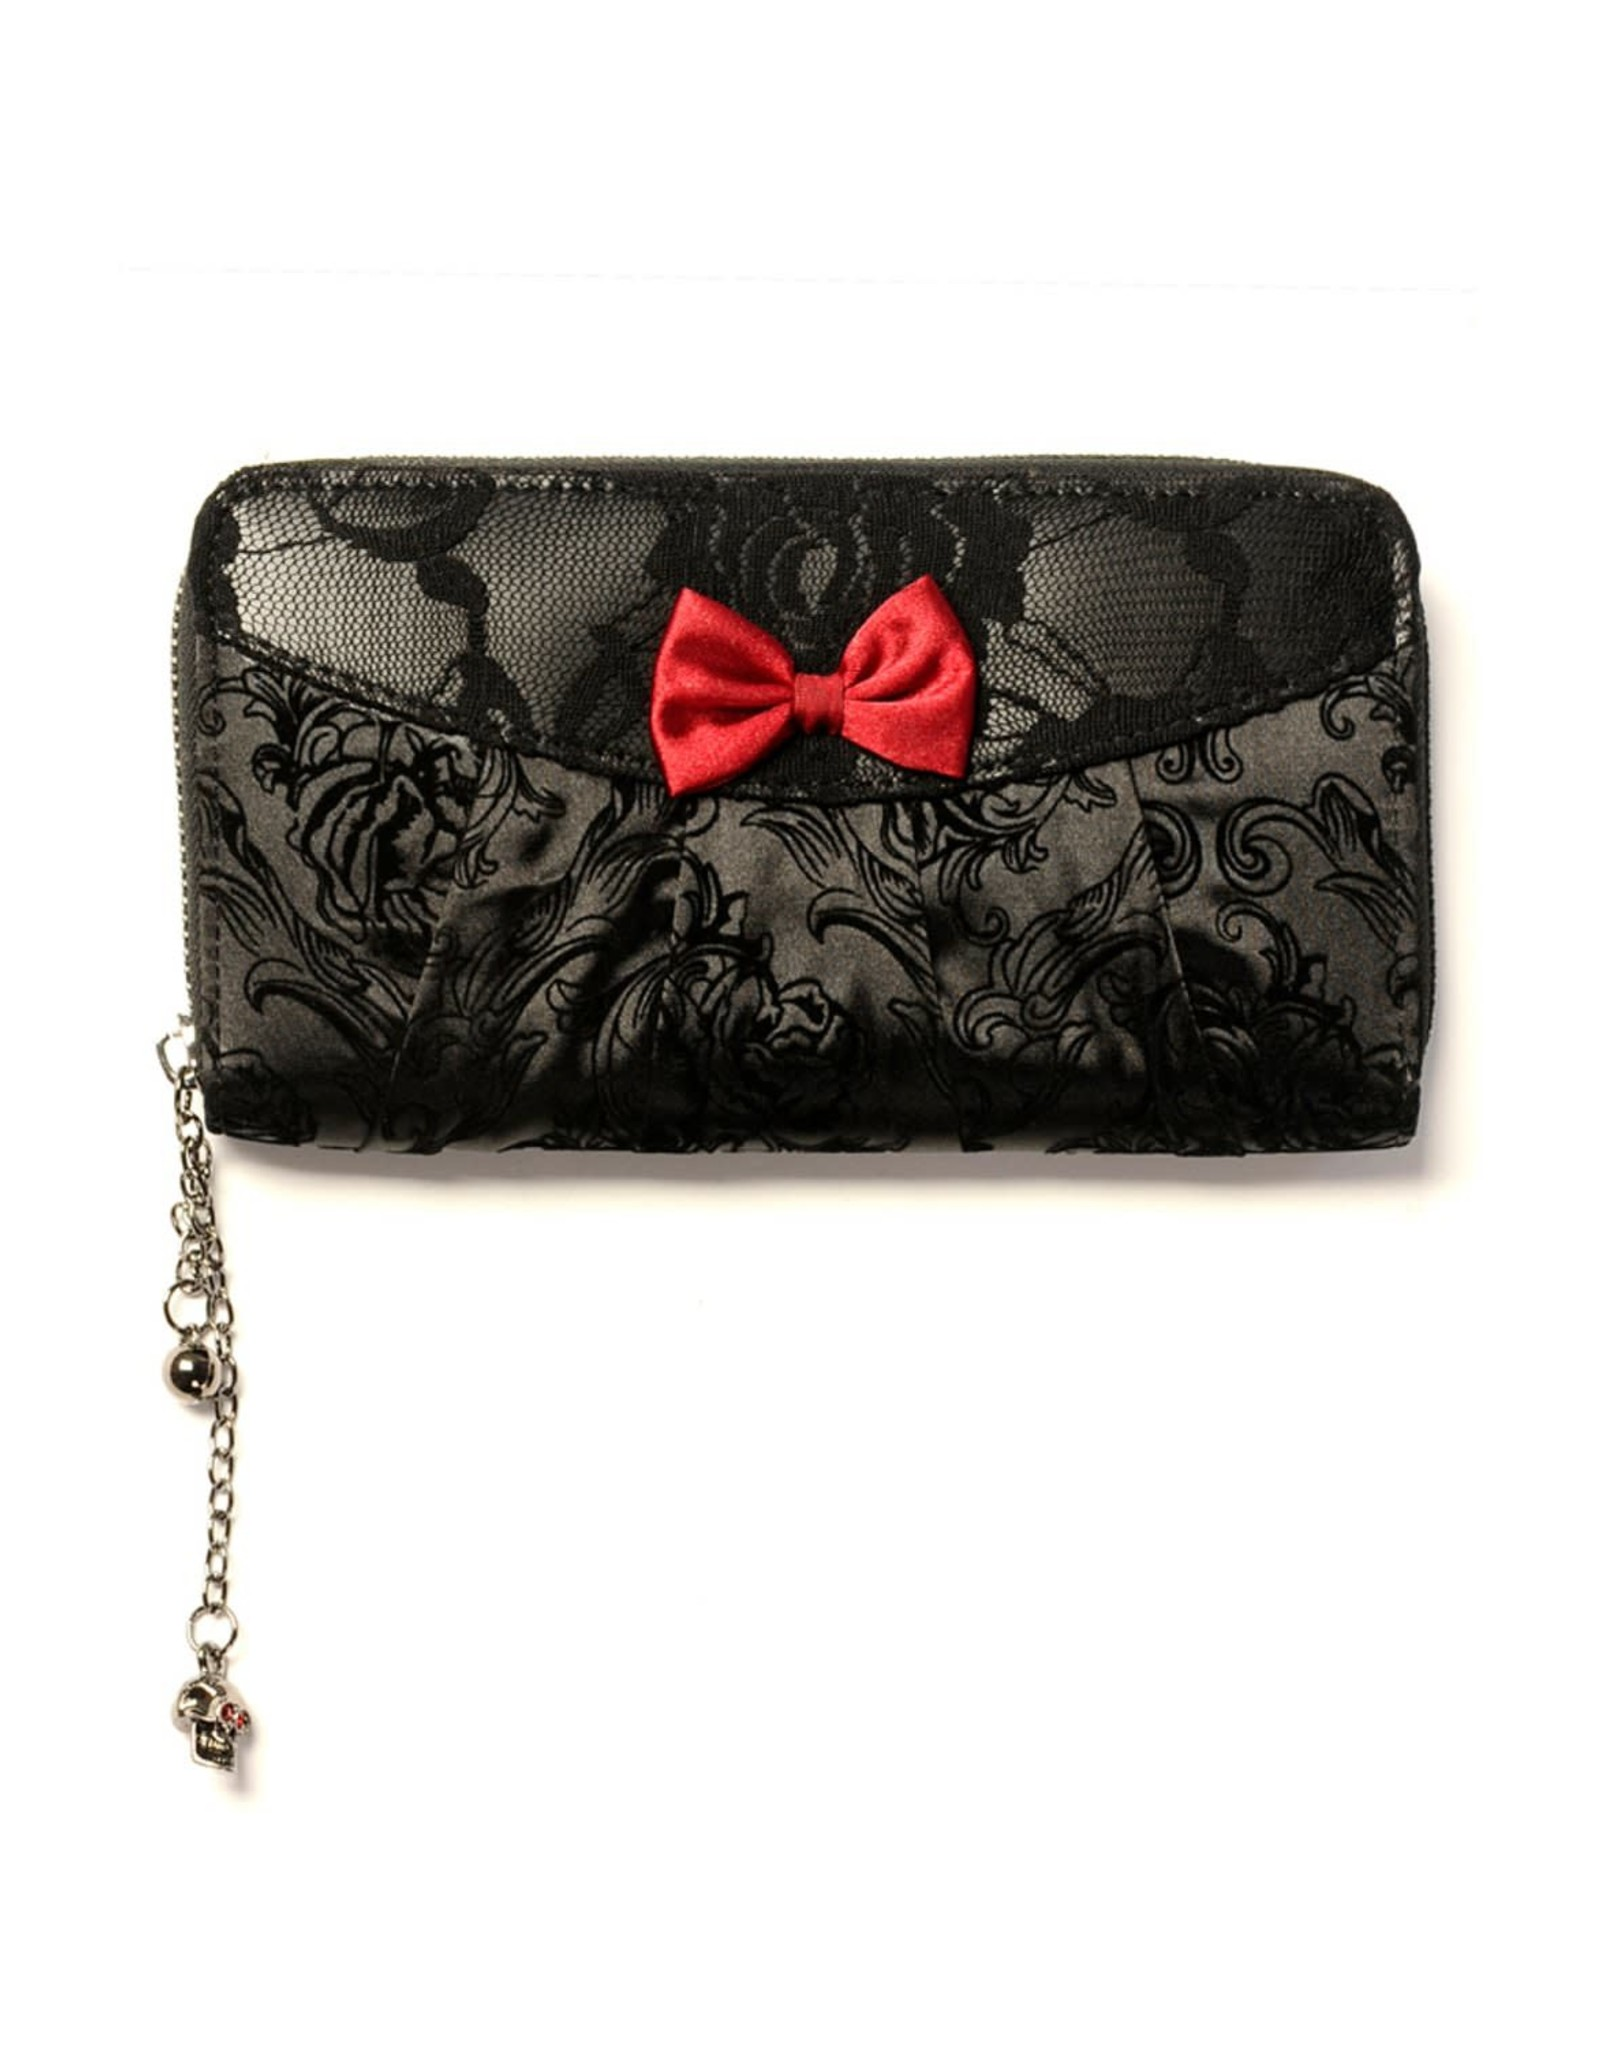 BANNED - Ivy Black Lace Wallet